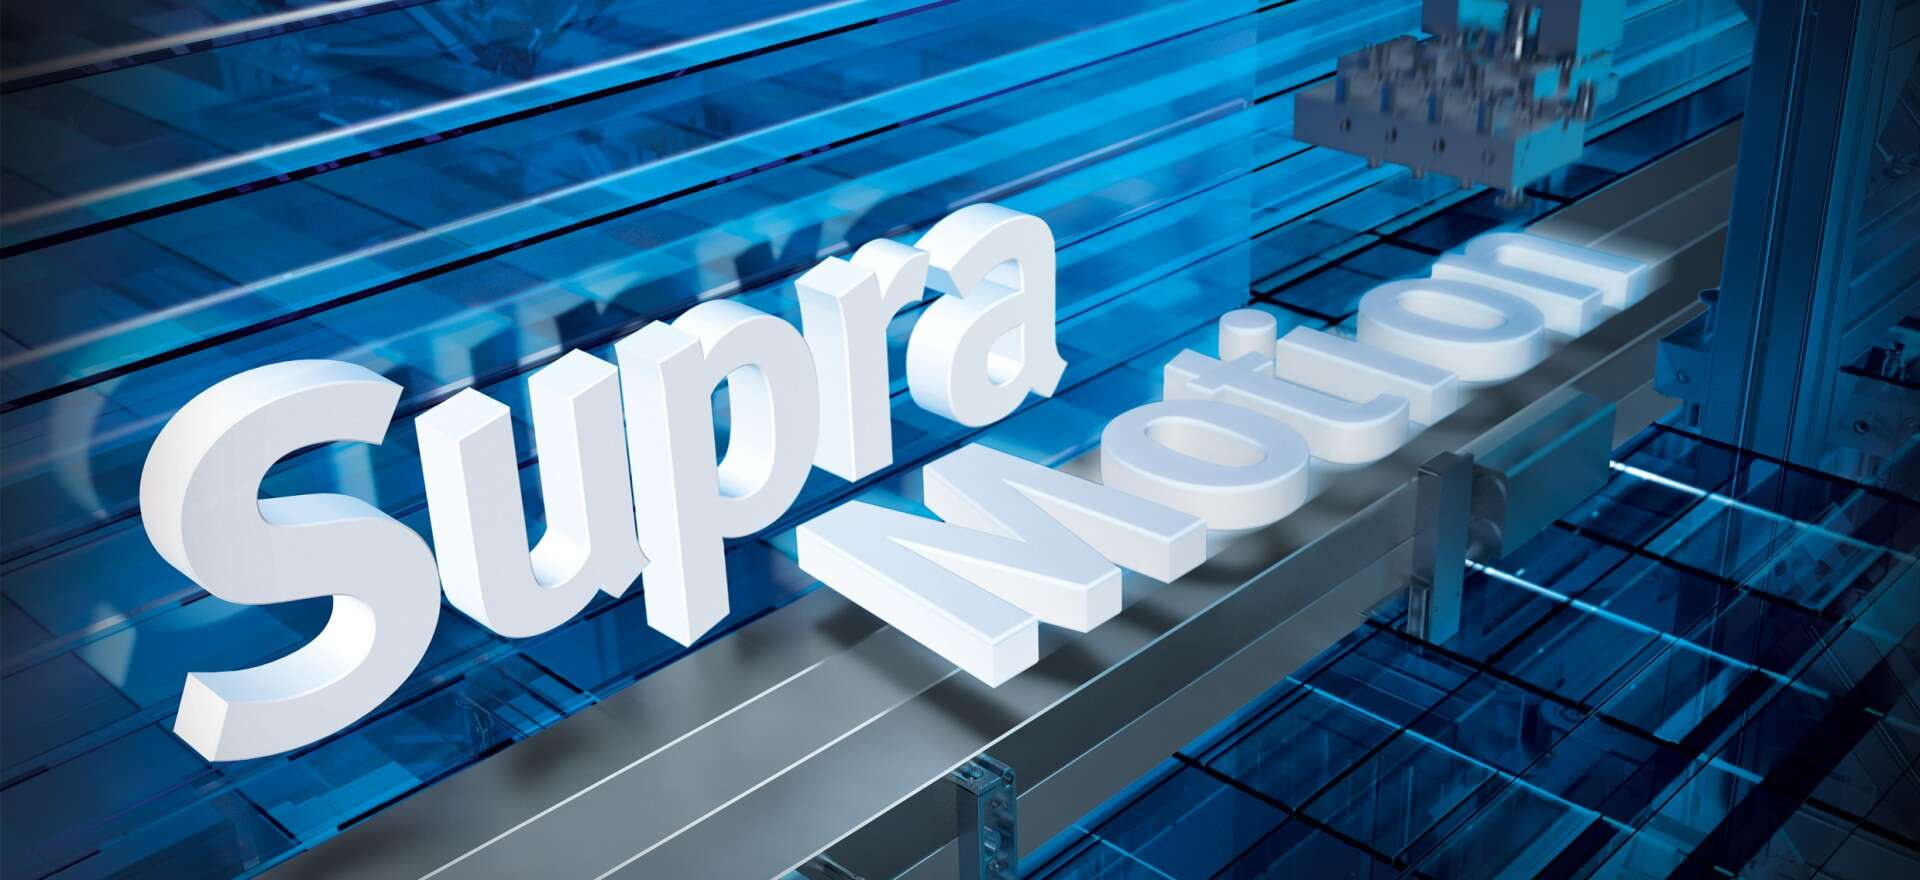 Festo SupraMotion: superconductors in industrial automation